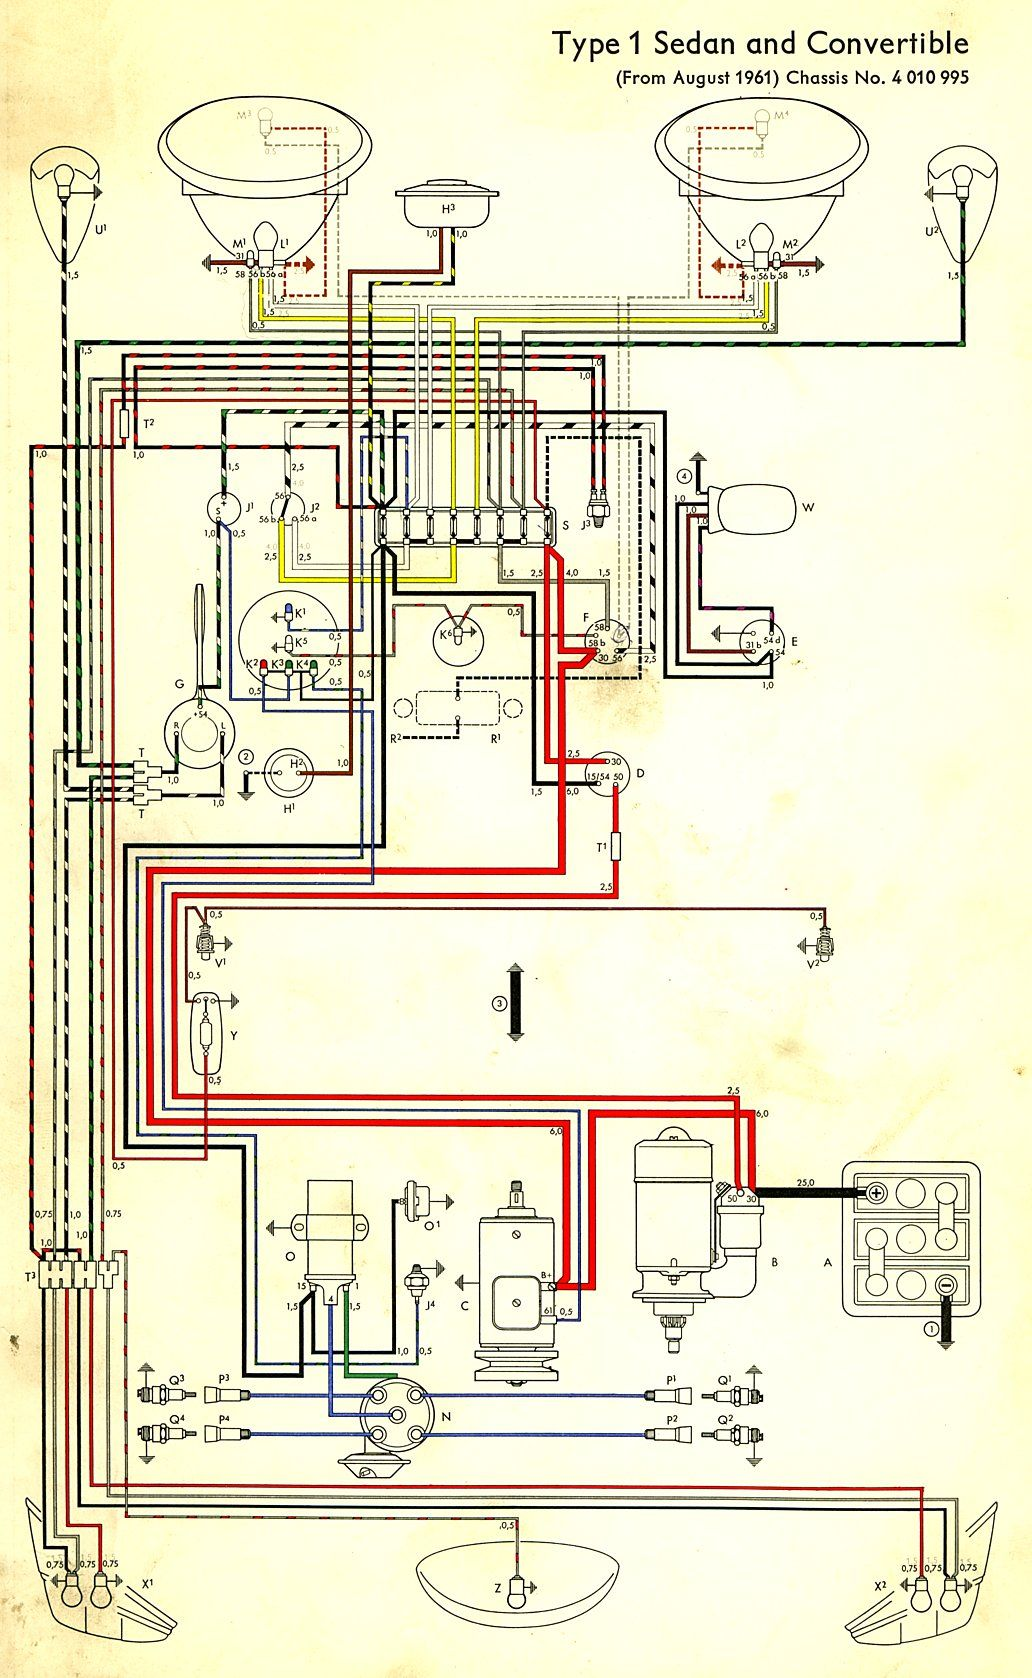 Peachy Vw Type 1 Wiring Diagram Basic Electronics Wiring Diagram Wiring Cloud Ratagdienstapotheekhoekschewaardnl